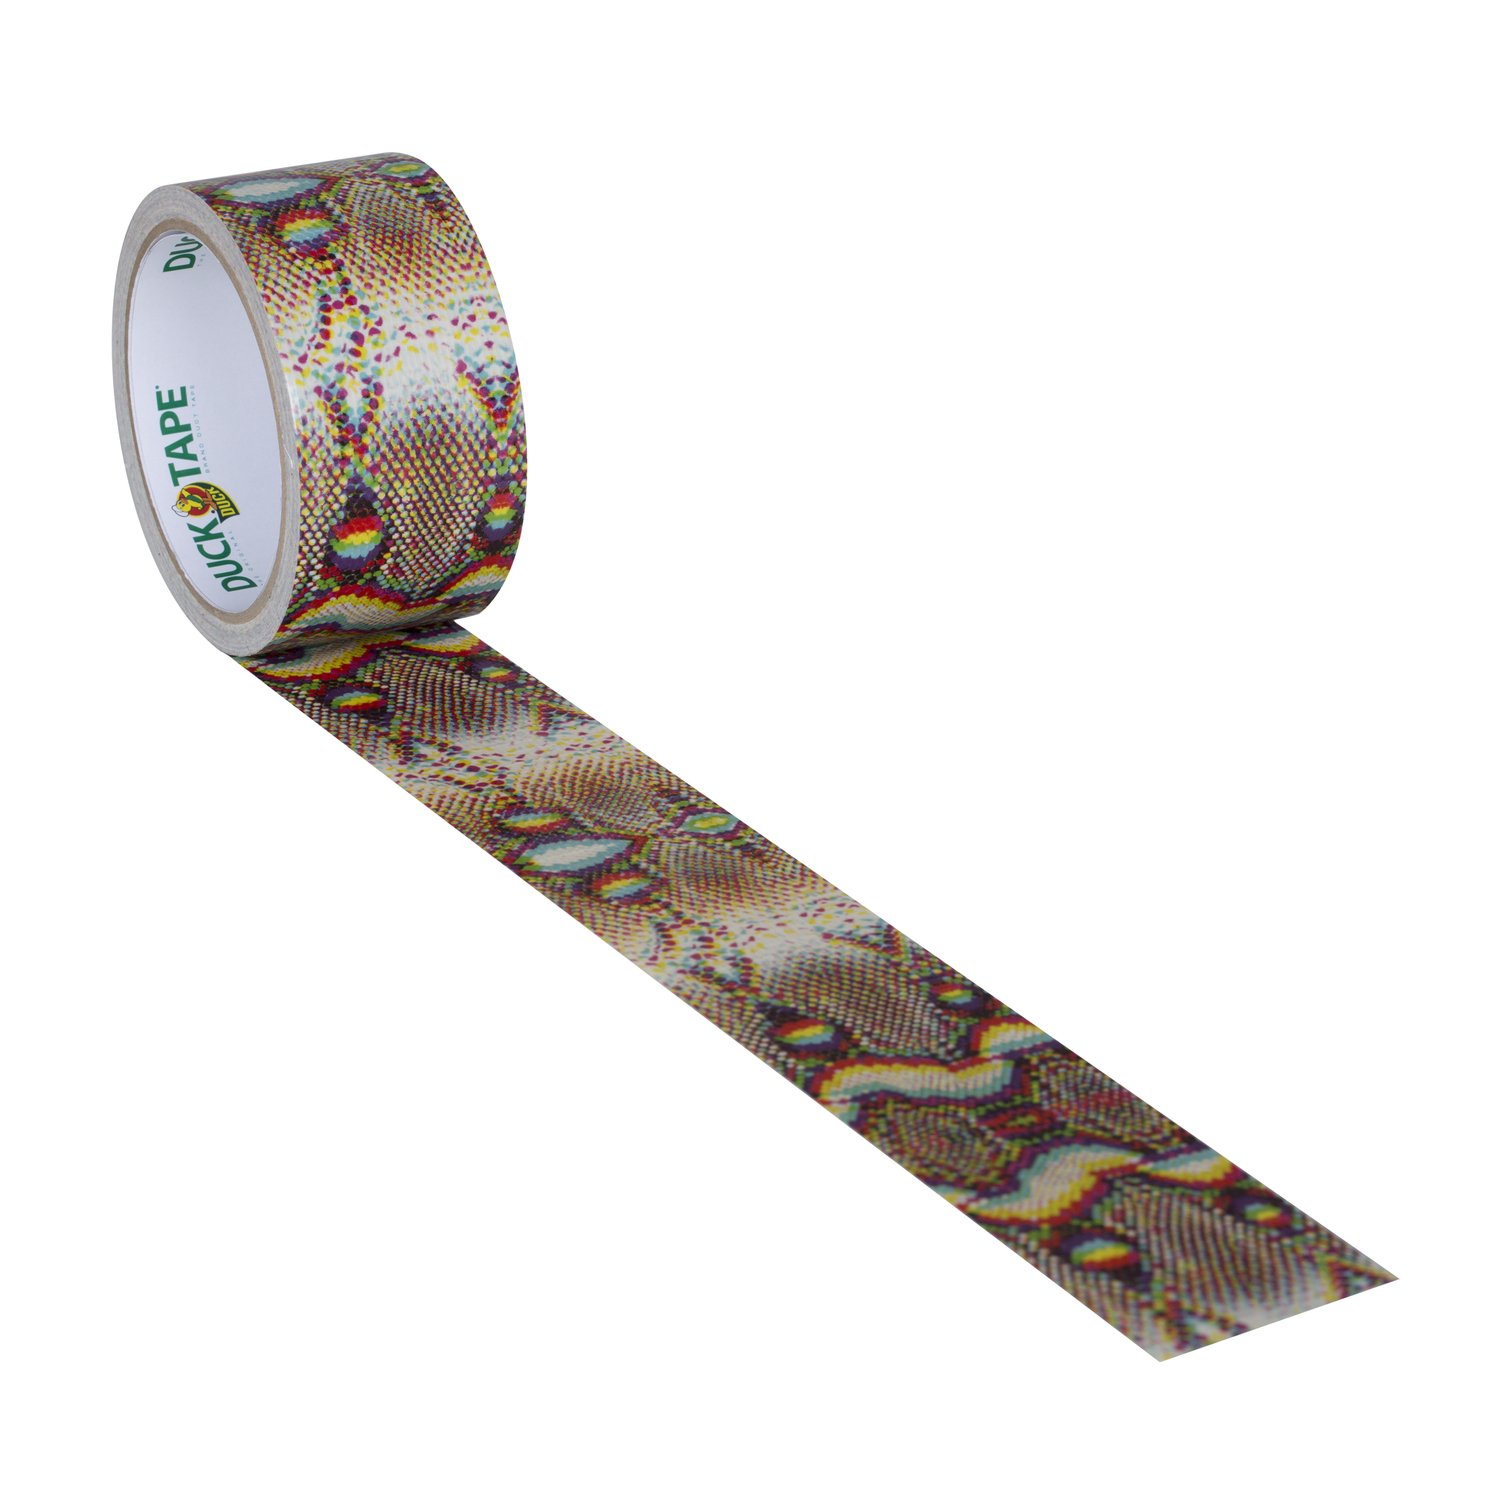 Duck Brand 1379347 Printed Duct Tape, Spotted Leopard, 1.88 Inches x 10 Yards, Single Roll Accessories